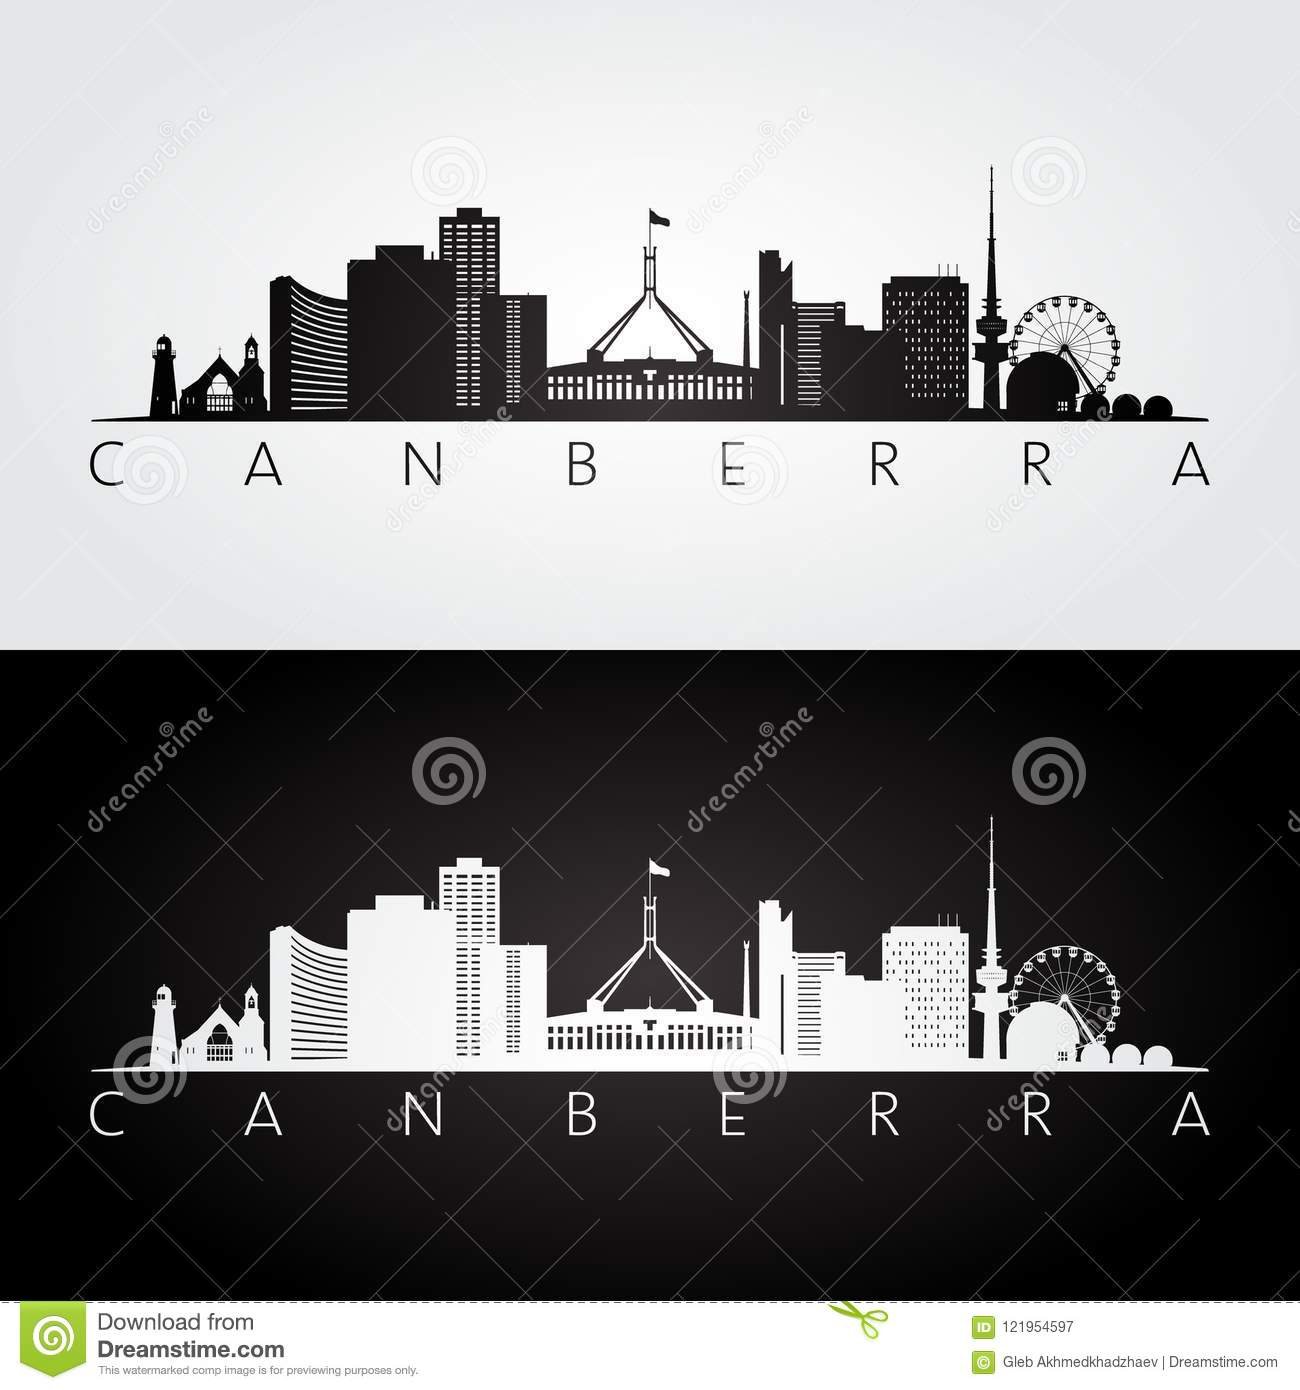 Canberra skyline and landmarks silhouette